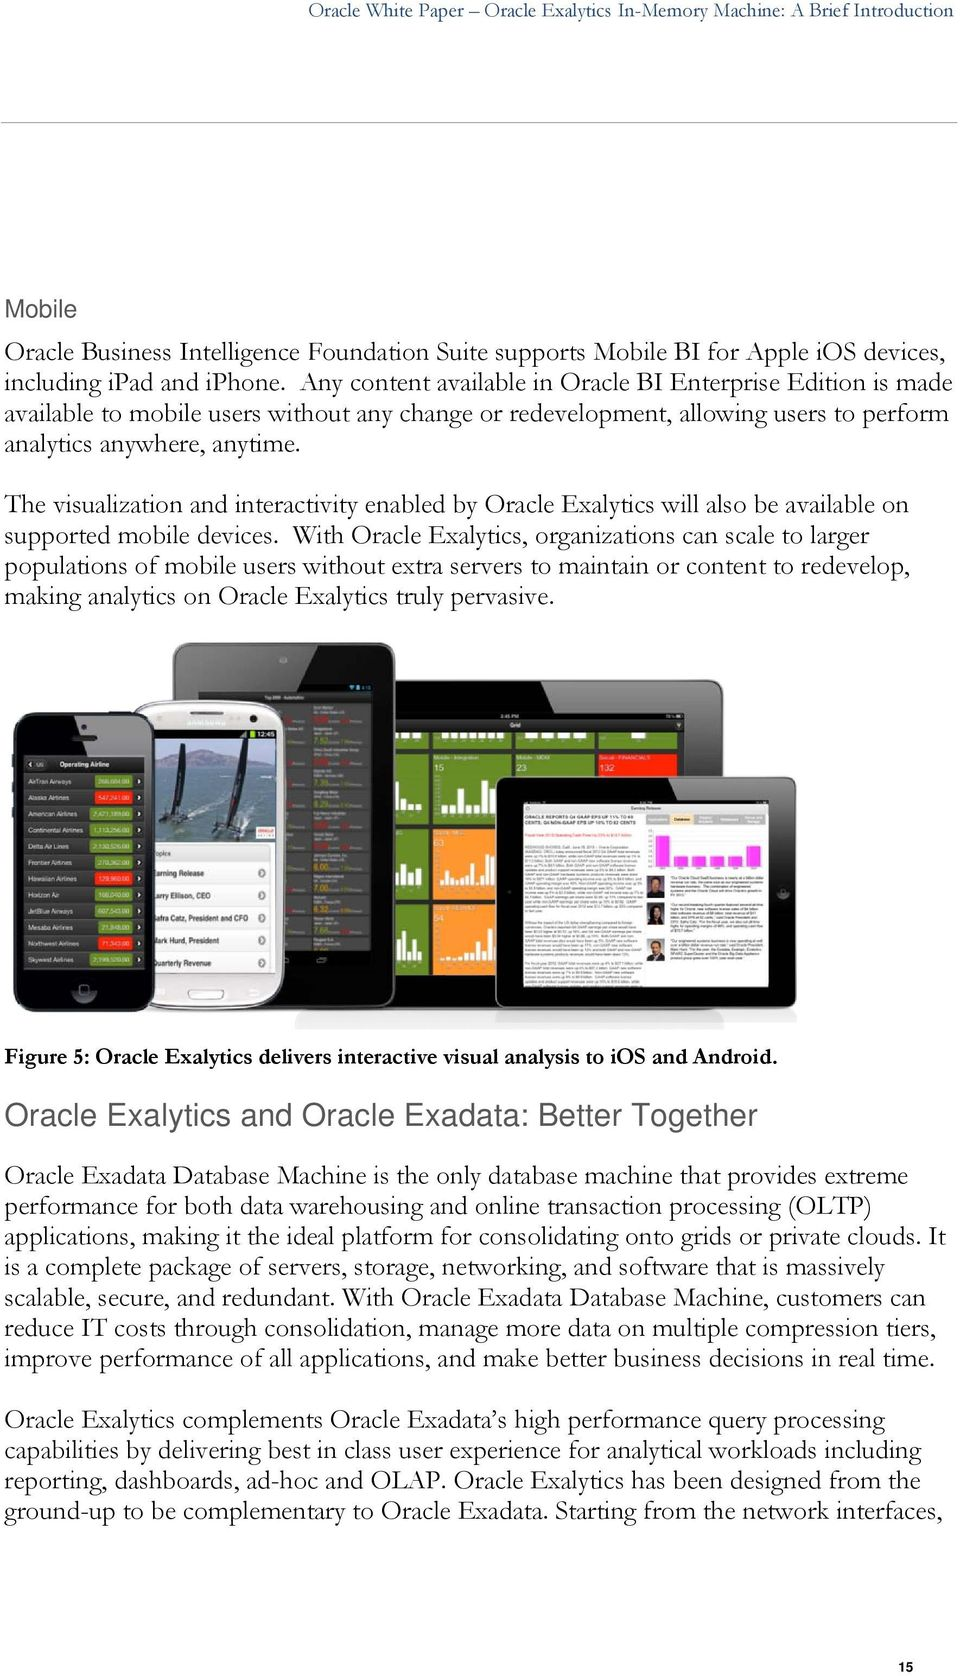 The visualization and interactivity enabled by Oracle Exalytics will also be available on supported mobile devices.